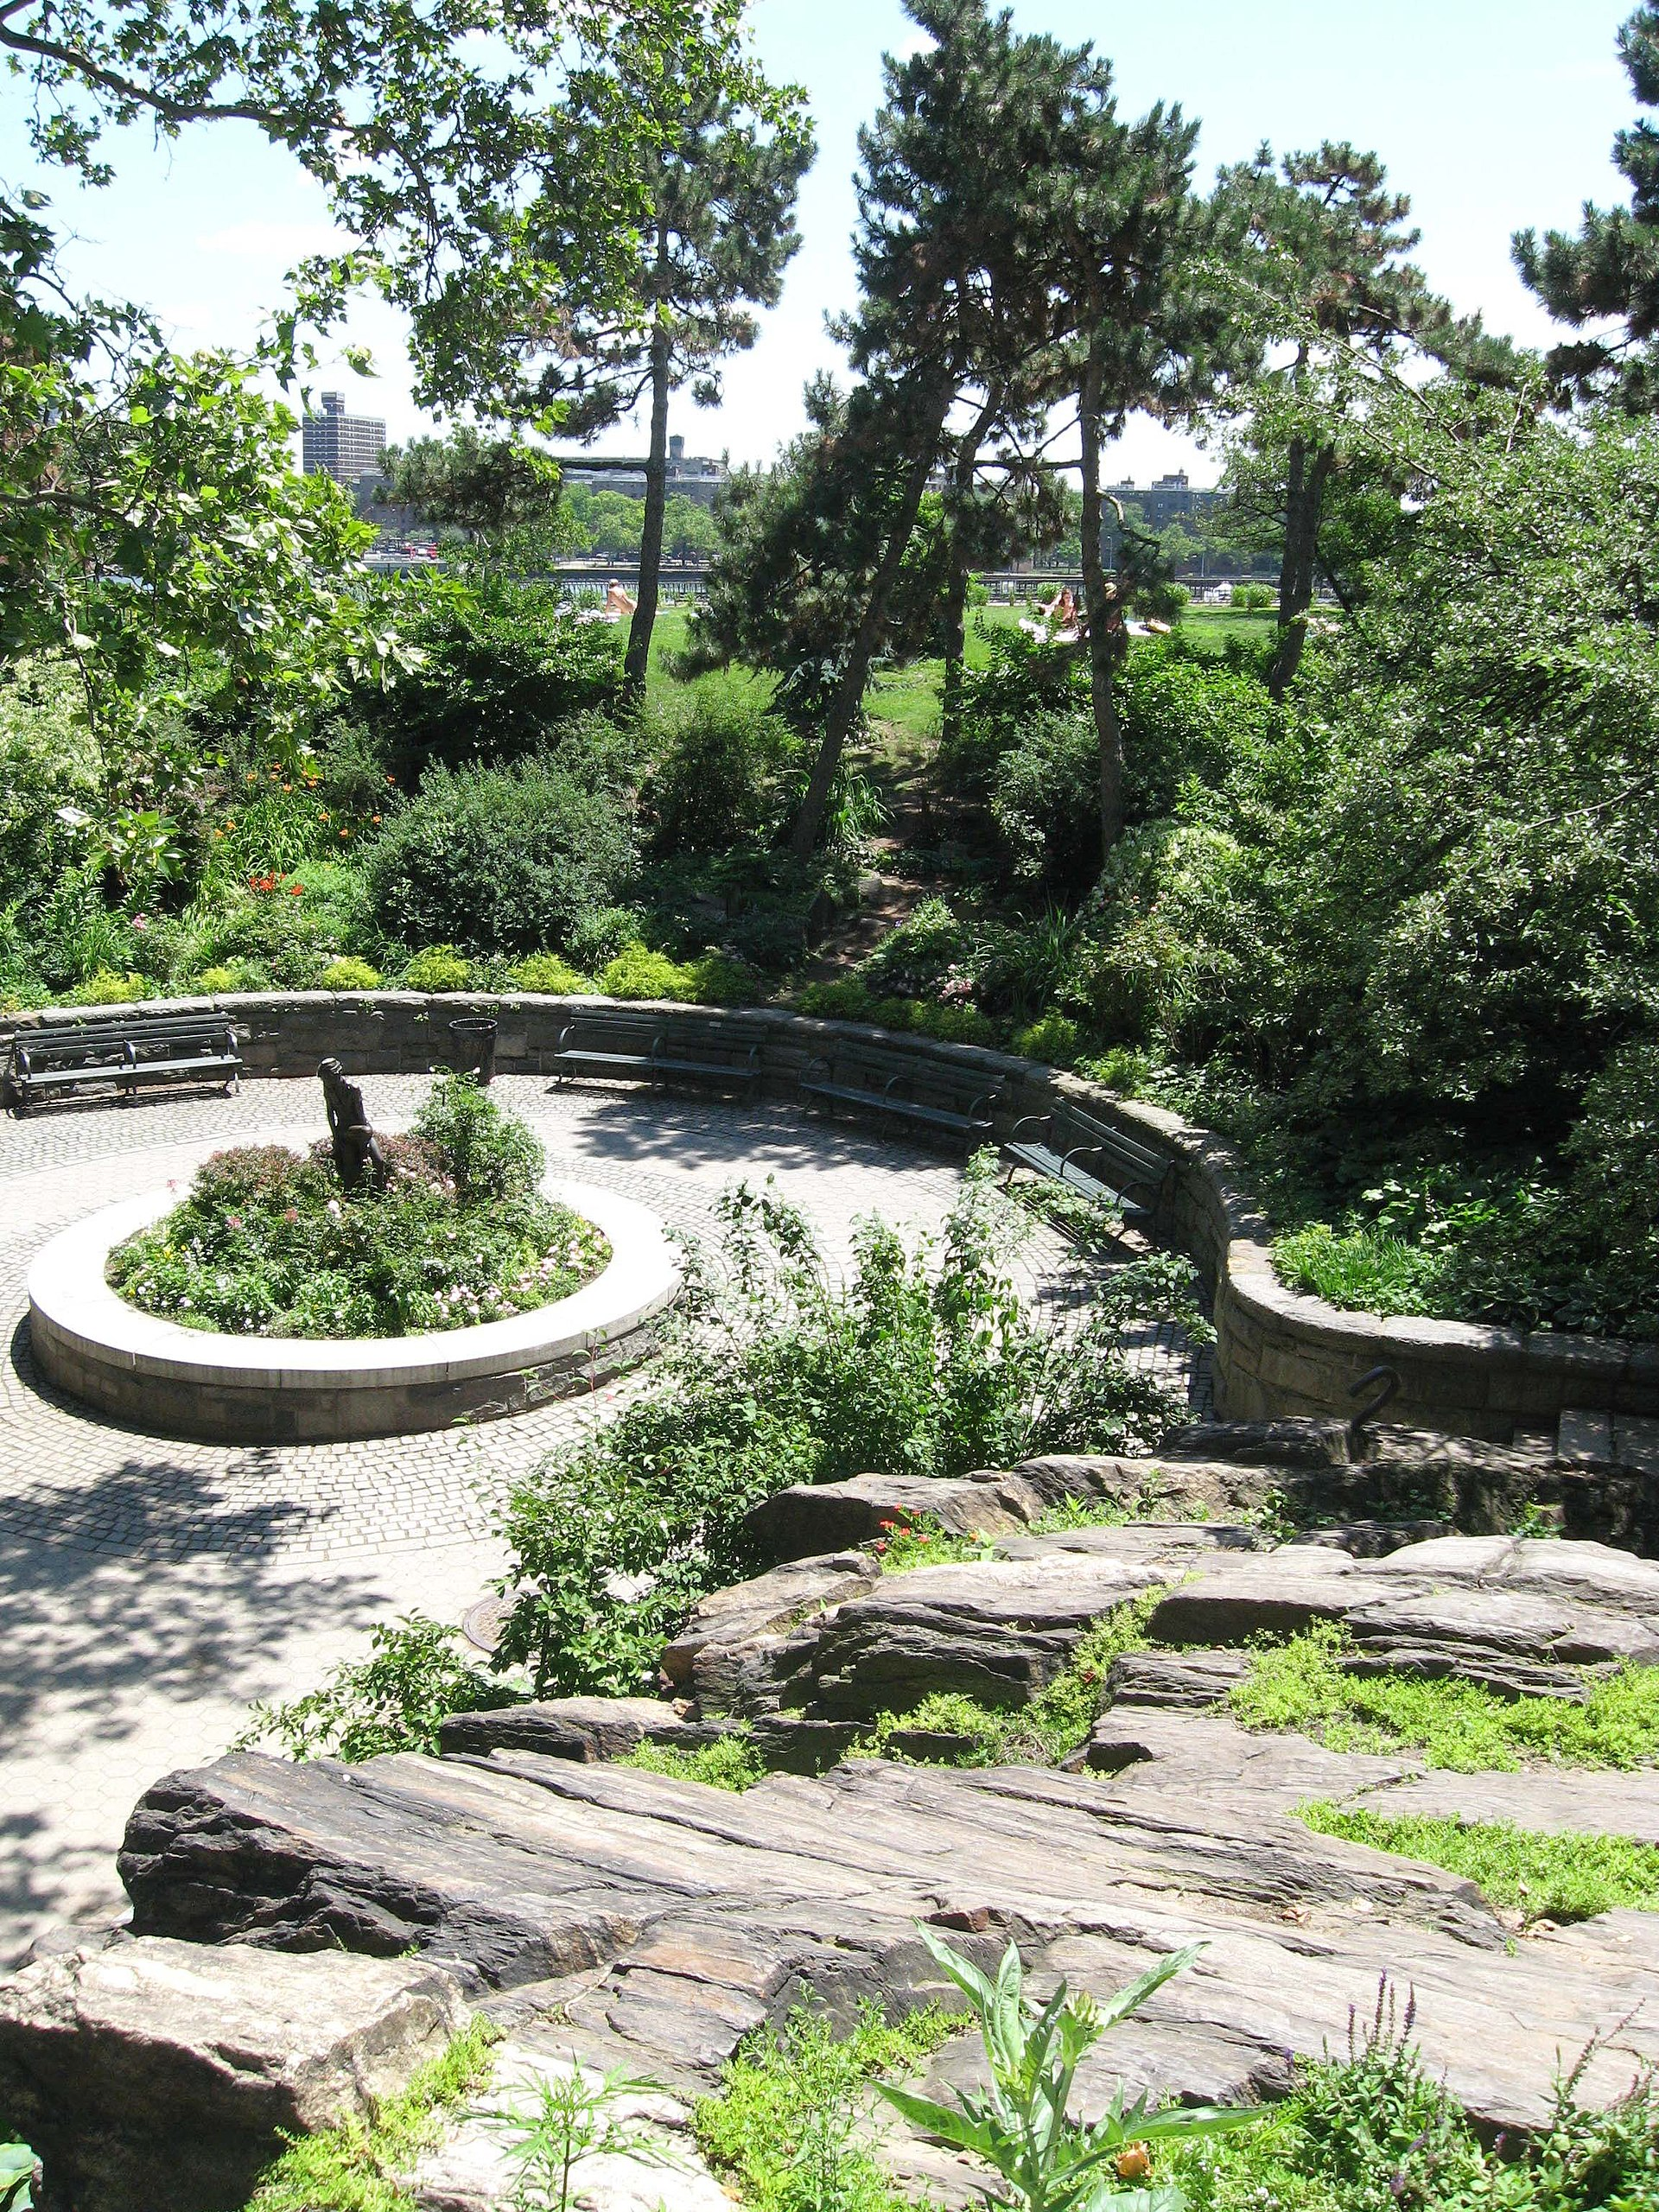 carl schurz park plaza statue wikipedia peter parks nyc york pan clean deserves apology shoe spaces river ny east patron